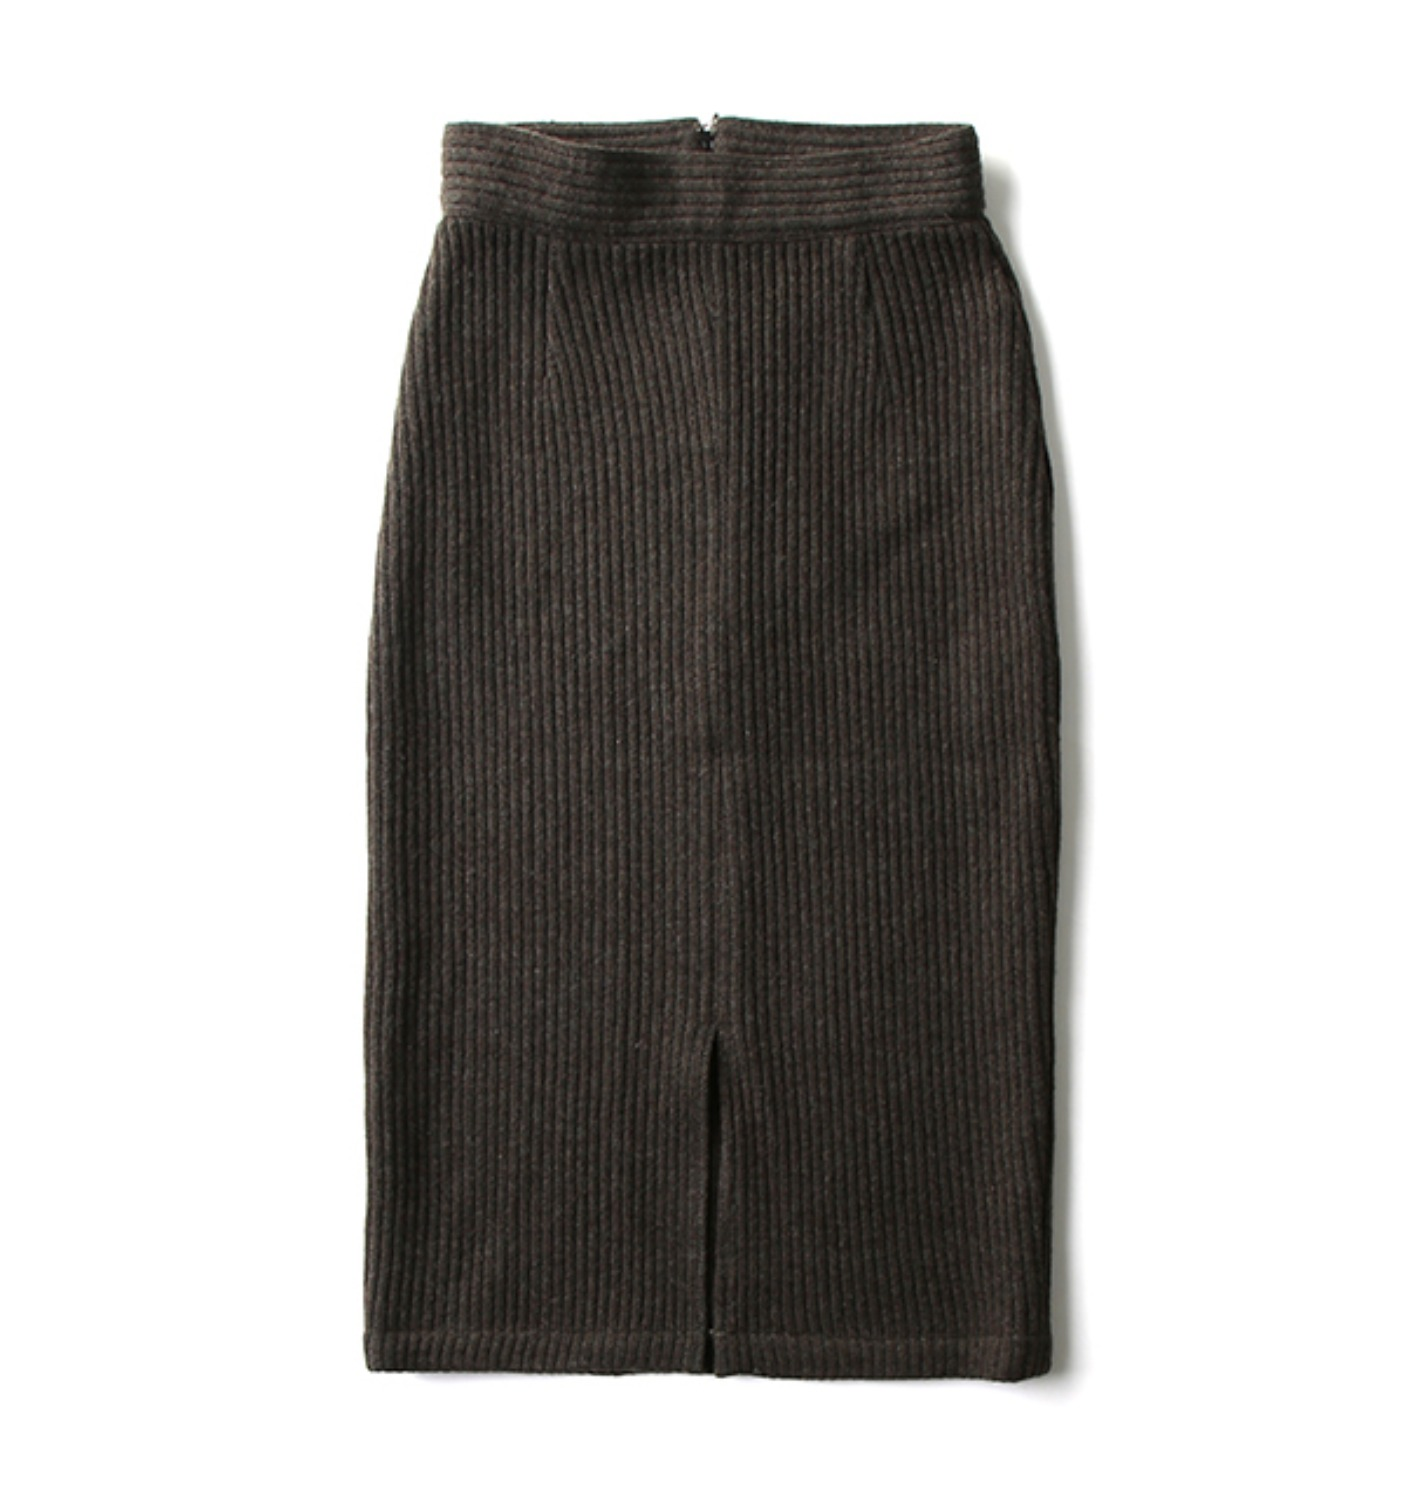 DE KNIT PENCIL SKIRT DARK OLIVE